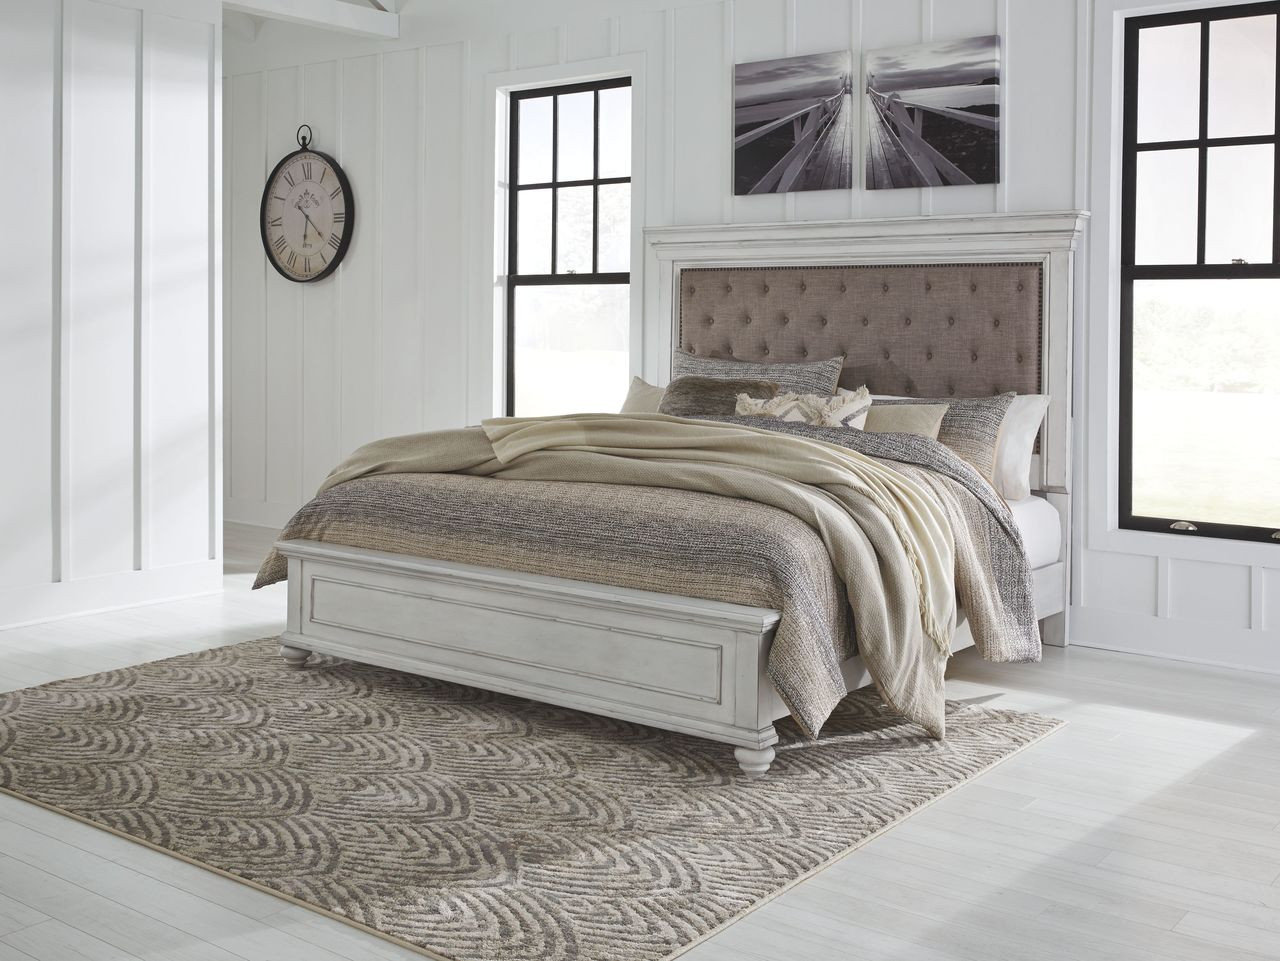 Picture of: The Kanwyn Whitewash Queen Panel Upholstered Bed Available At Hometown Furnishings Retail Rent To Own Serving Brockton And Taunton Ma